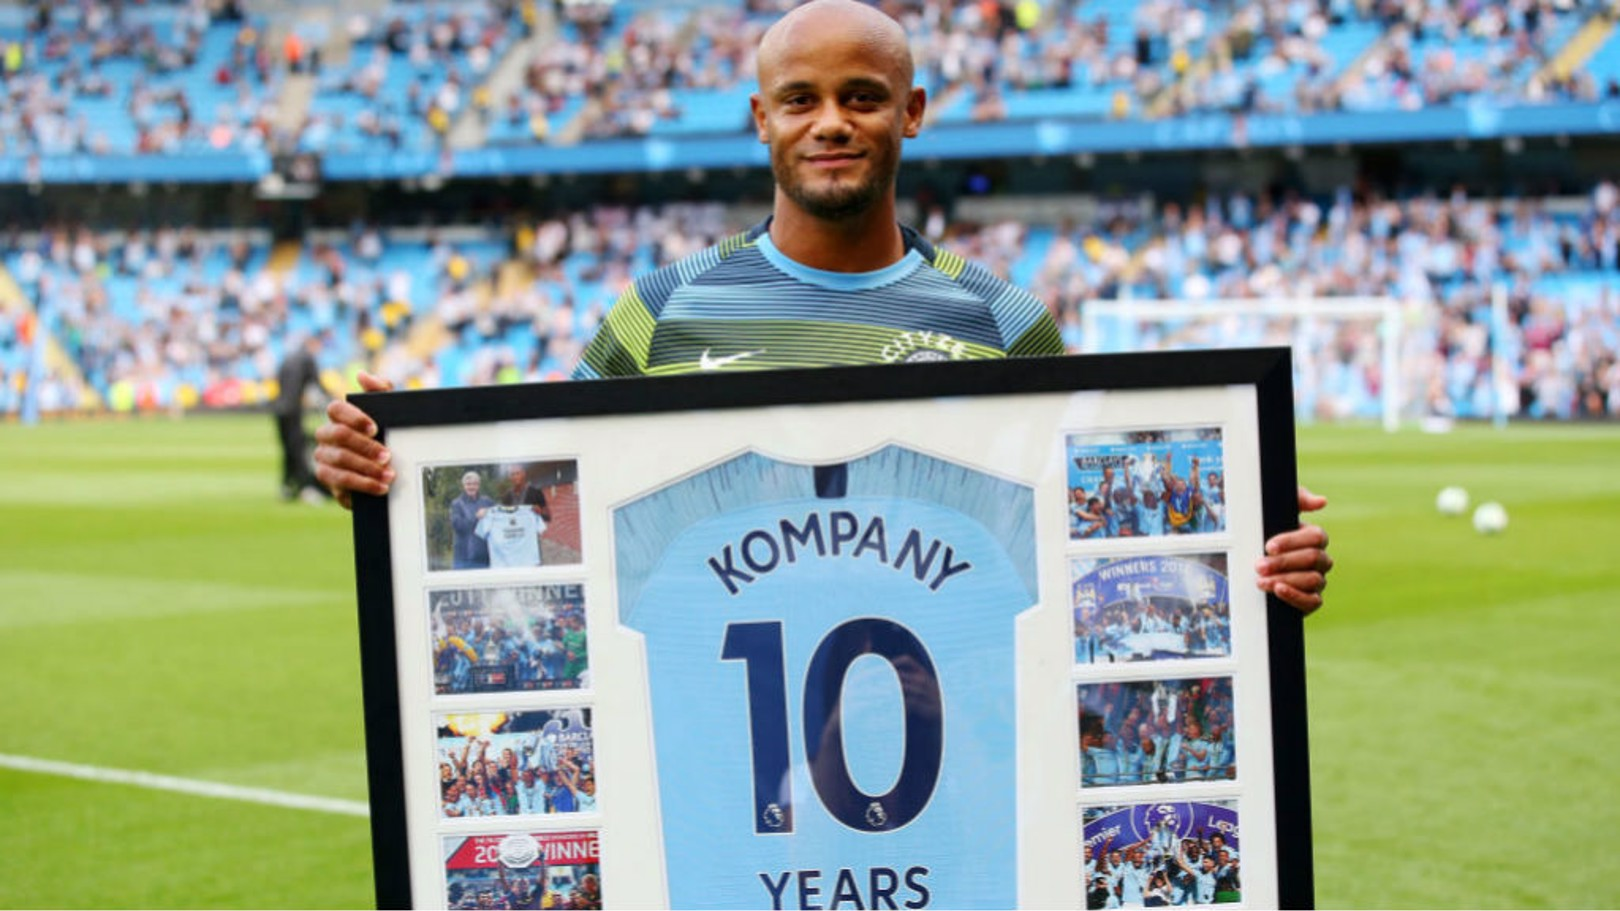 PERFECT 10: Vincent Kompany was presented with a special framed shirt to mark his decade at City prior to last Saturday's match against Newcastle